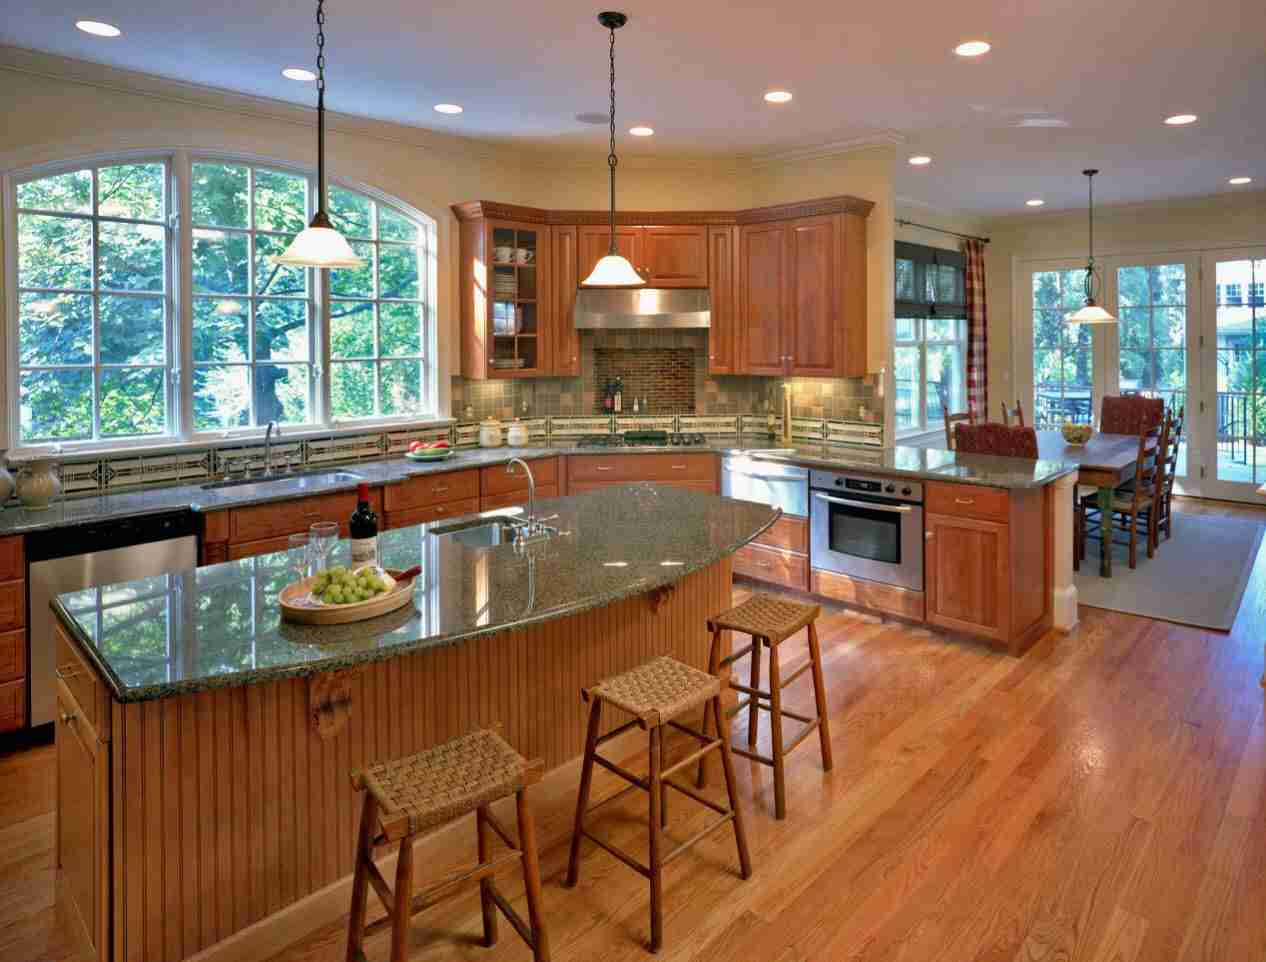 Solid Wood Kitchen Stylish Ideas for Modern Interiors. Light wooden design with marble countertop